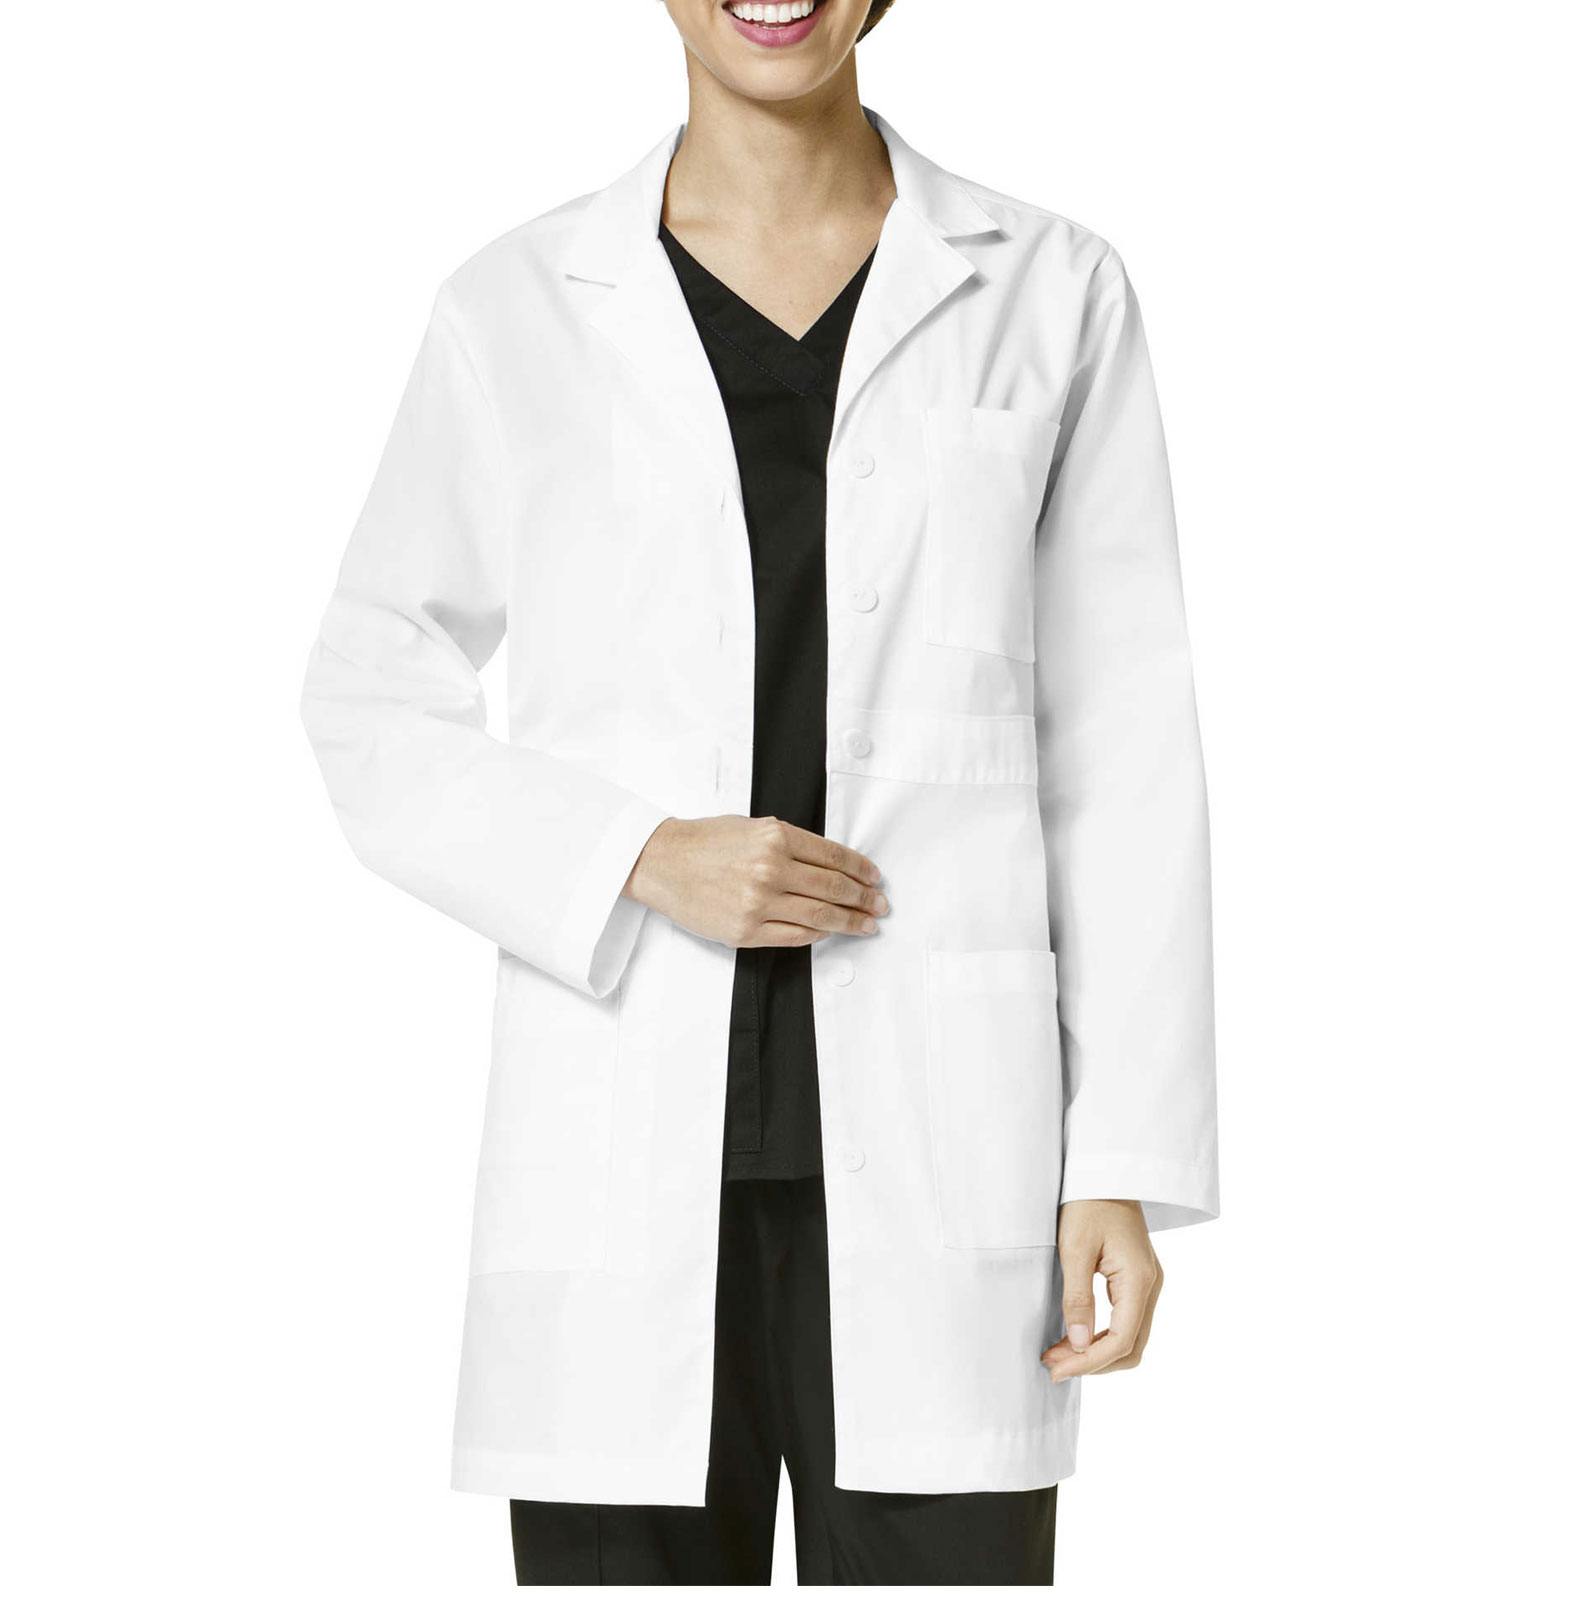 Womens Basic Lab Coat from Wonder Work